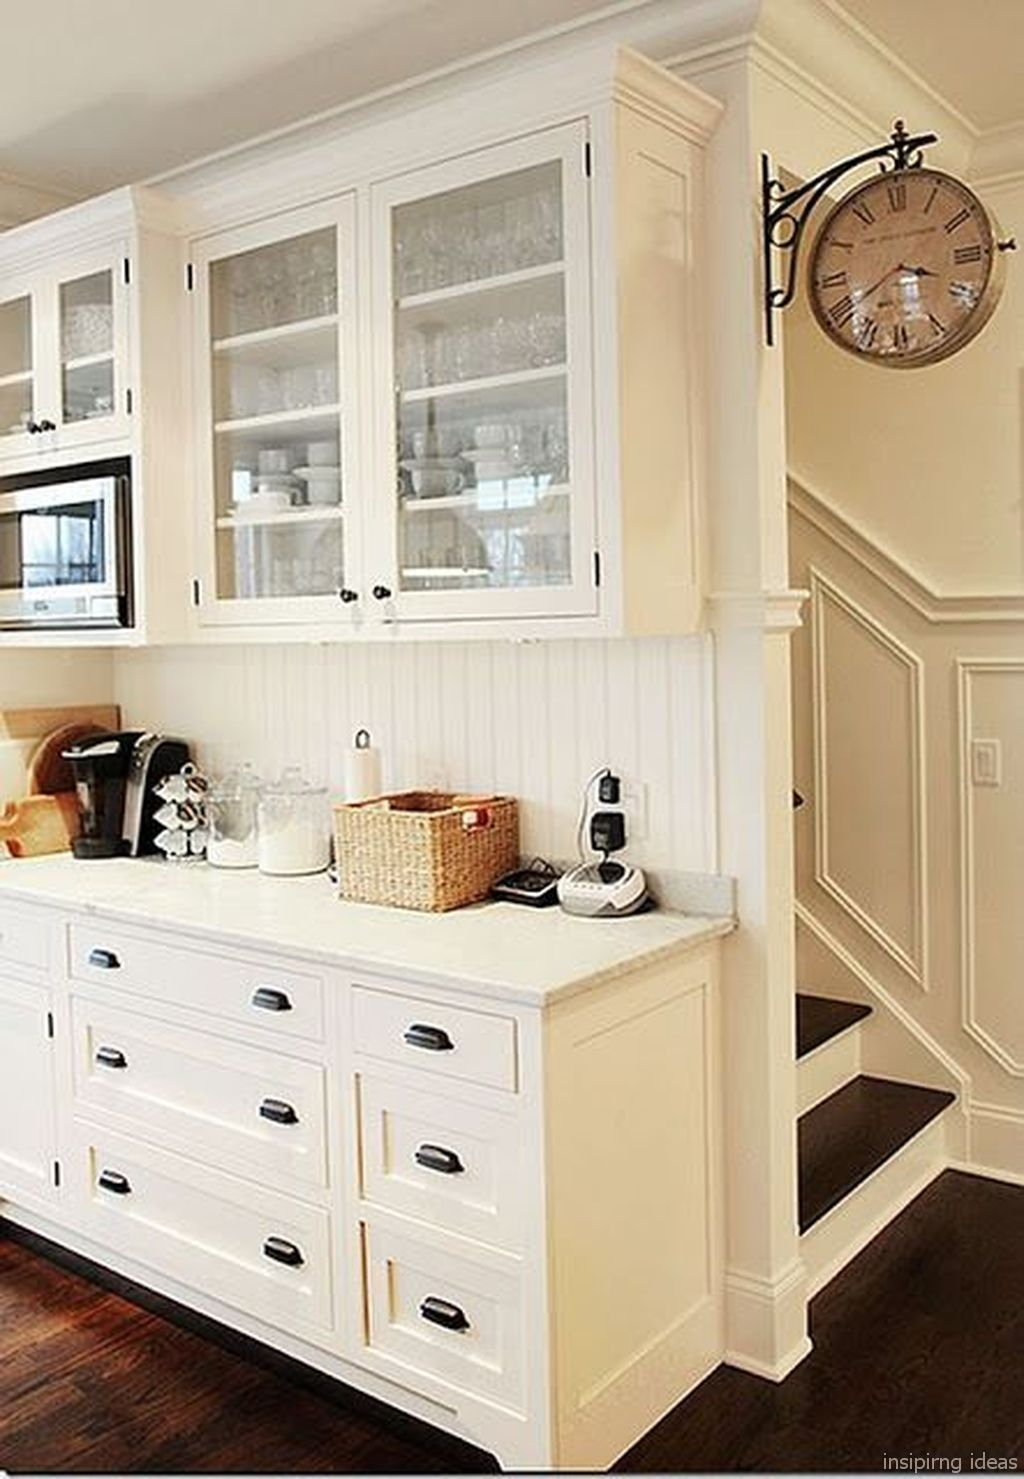 20 Incredible Modern Farmhouse Kitchen Ideas